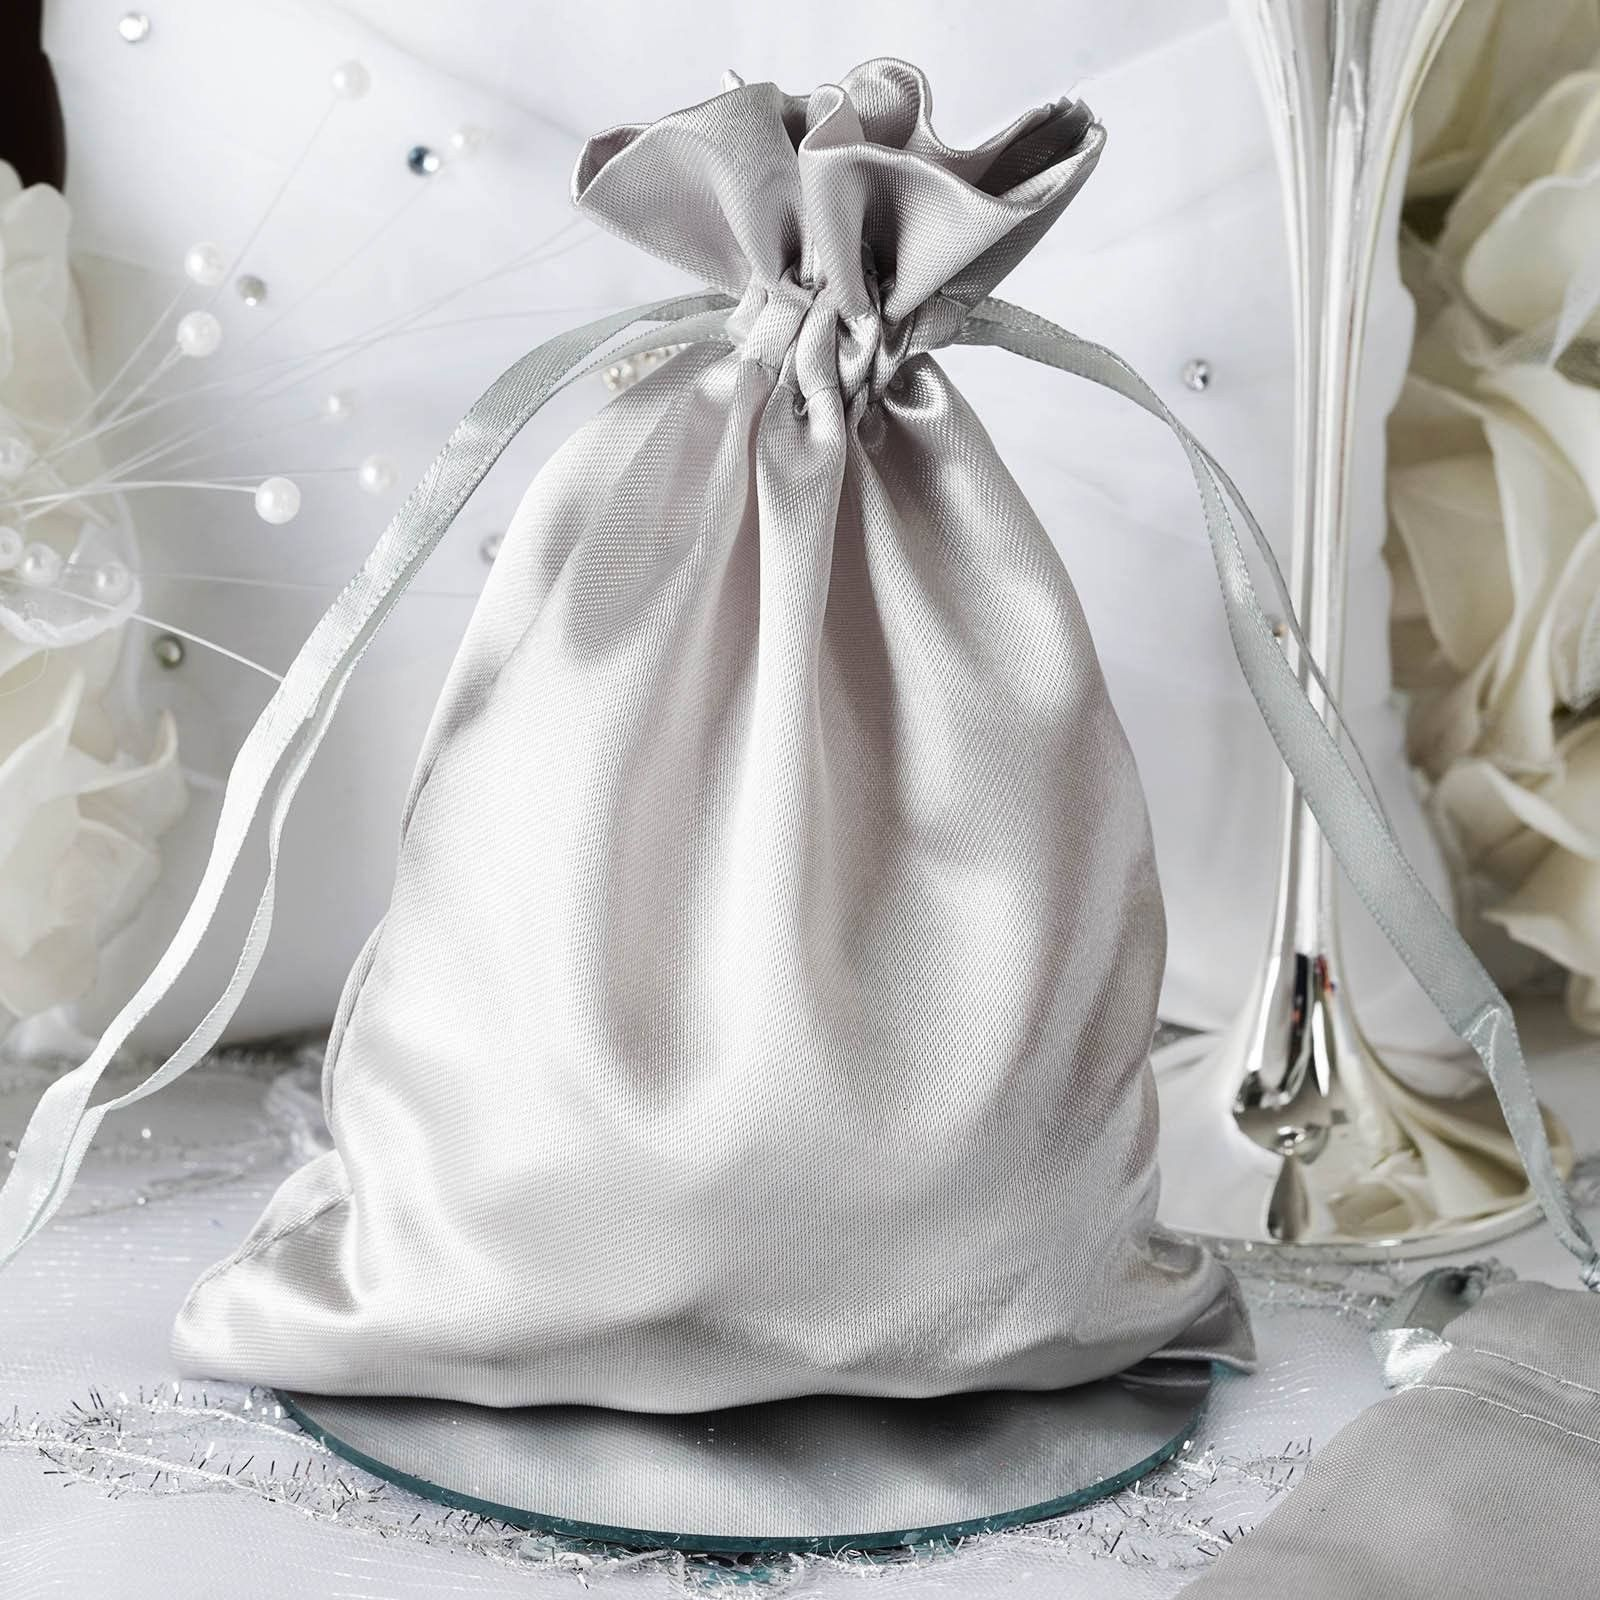 5x7 Silver Satin Bags-dz/pk | Satin and Products